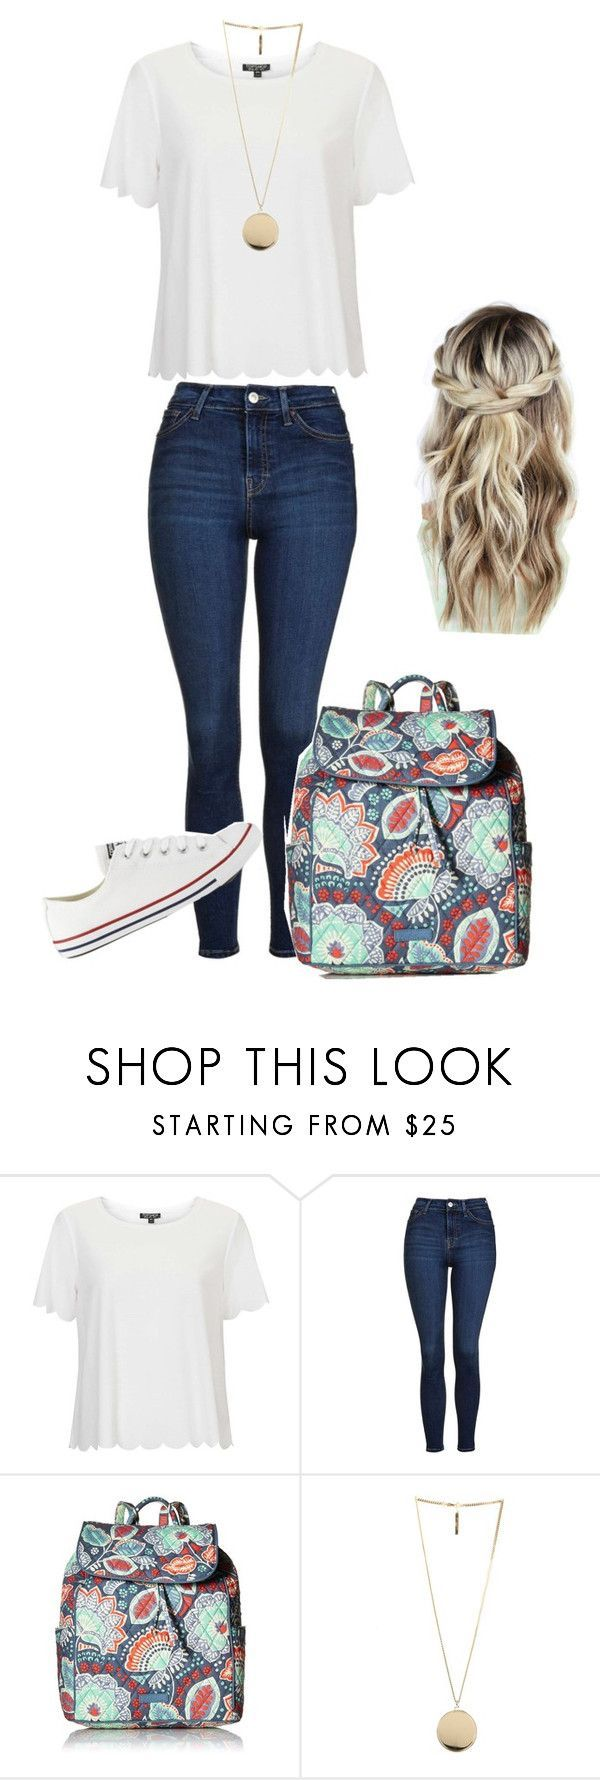 first day of school outfit  2019  first day of school outfit by avery-m-smith on Polyvore featuring Topshop Vera Bradley Givenchy and Converse  The post first day of school outfit  2019 appeared first on Outfit Diy. #firstdayofschoolhairstyles